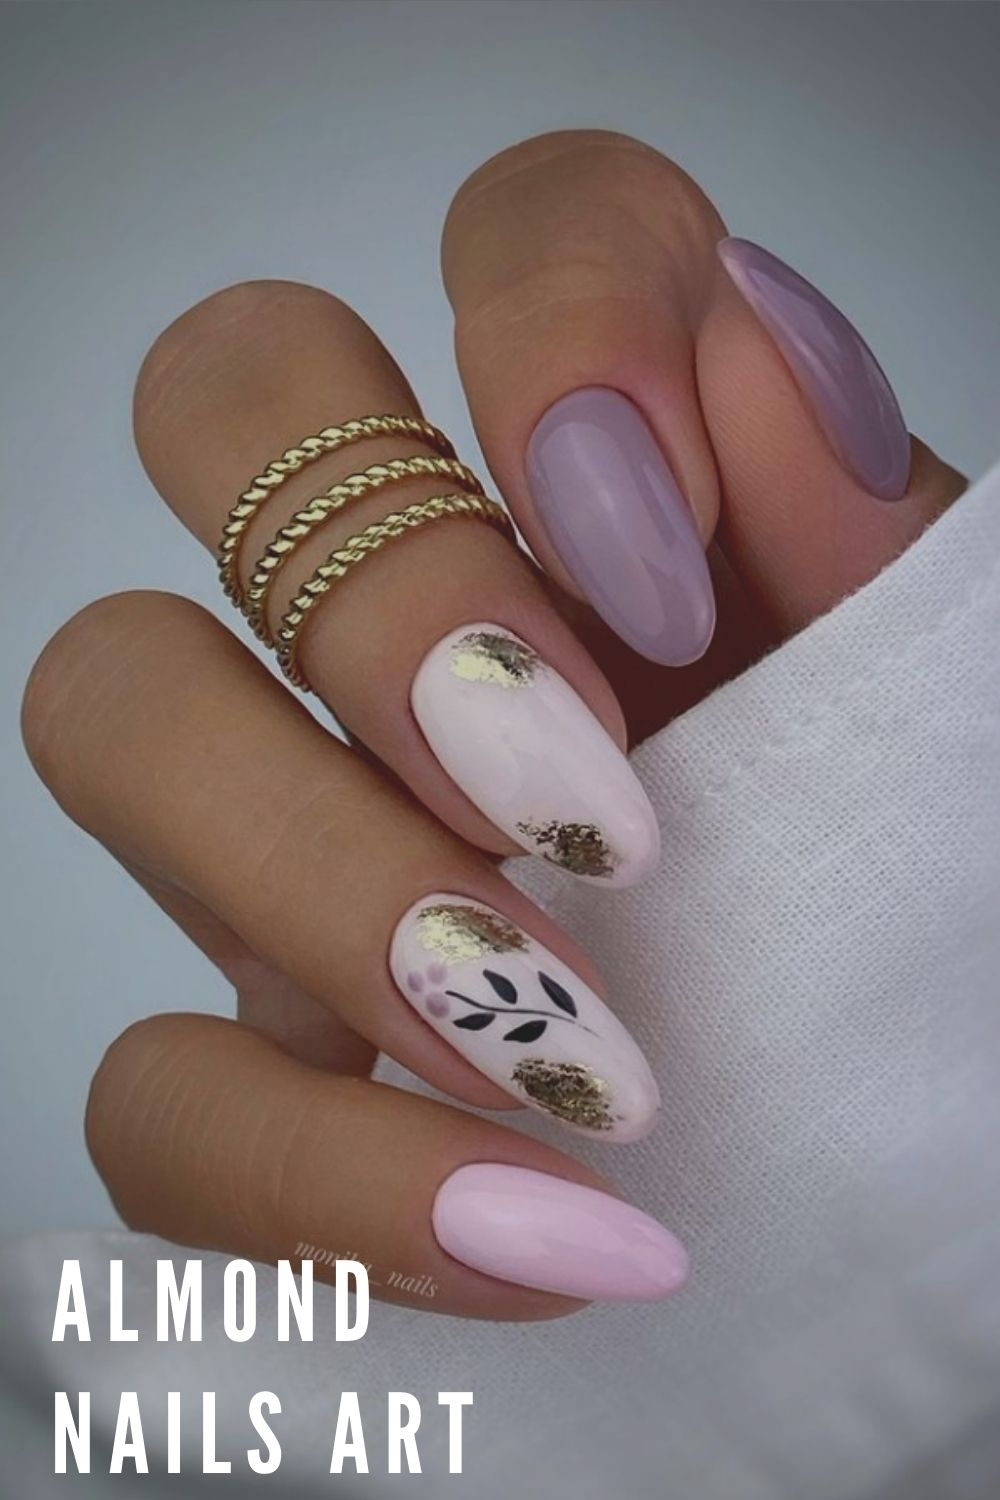 Almond nail design with leaves